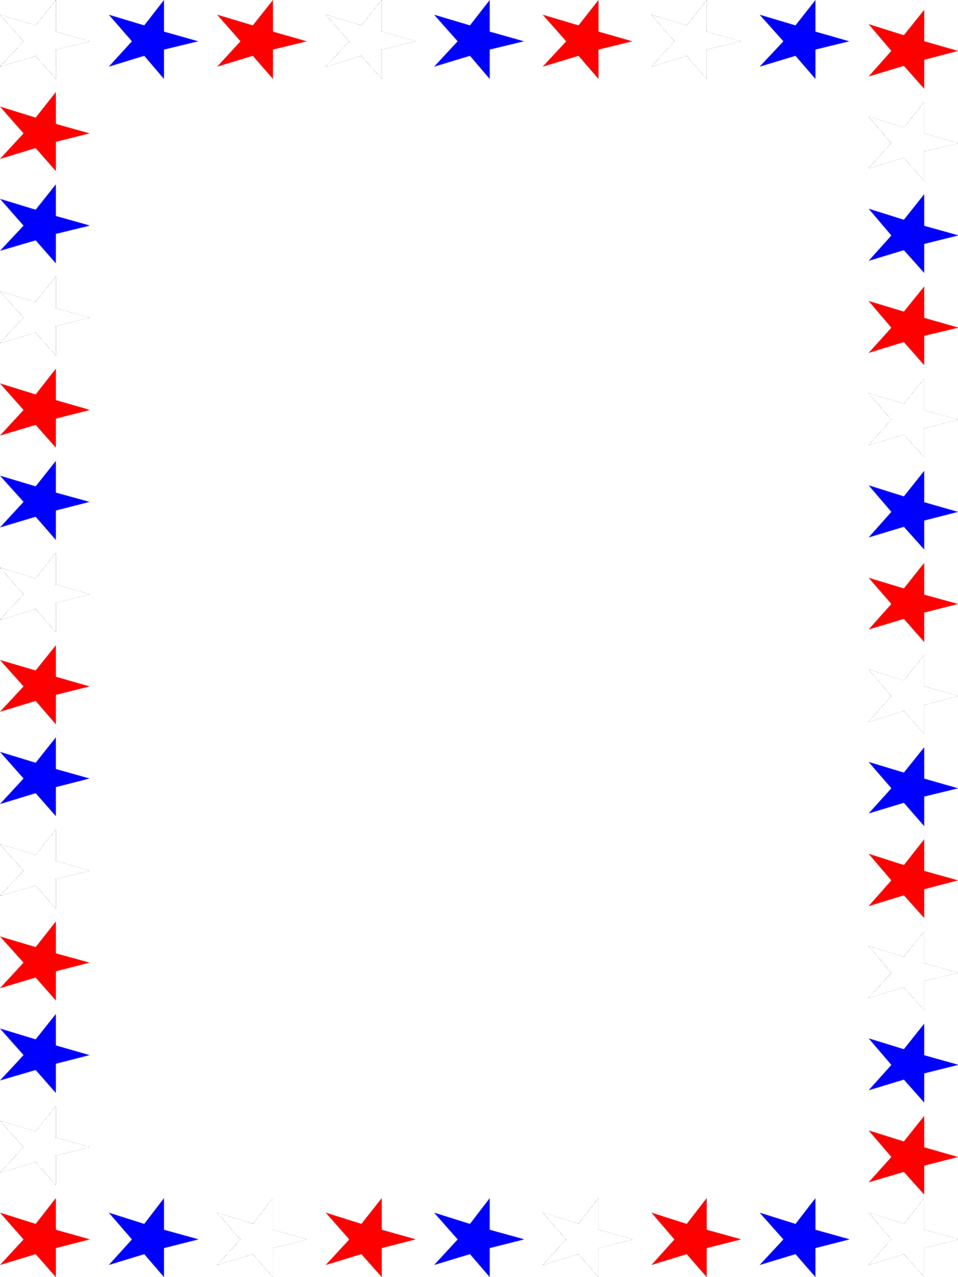 Illustration of a blank frame border of red white and blue stars.